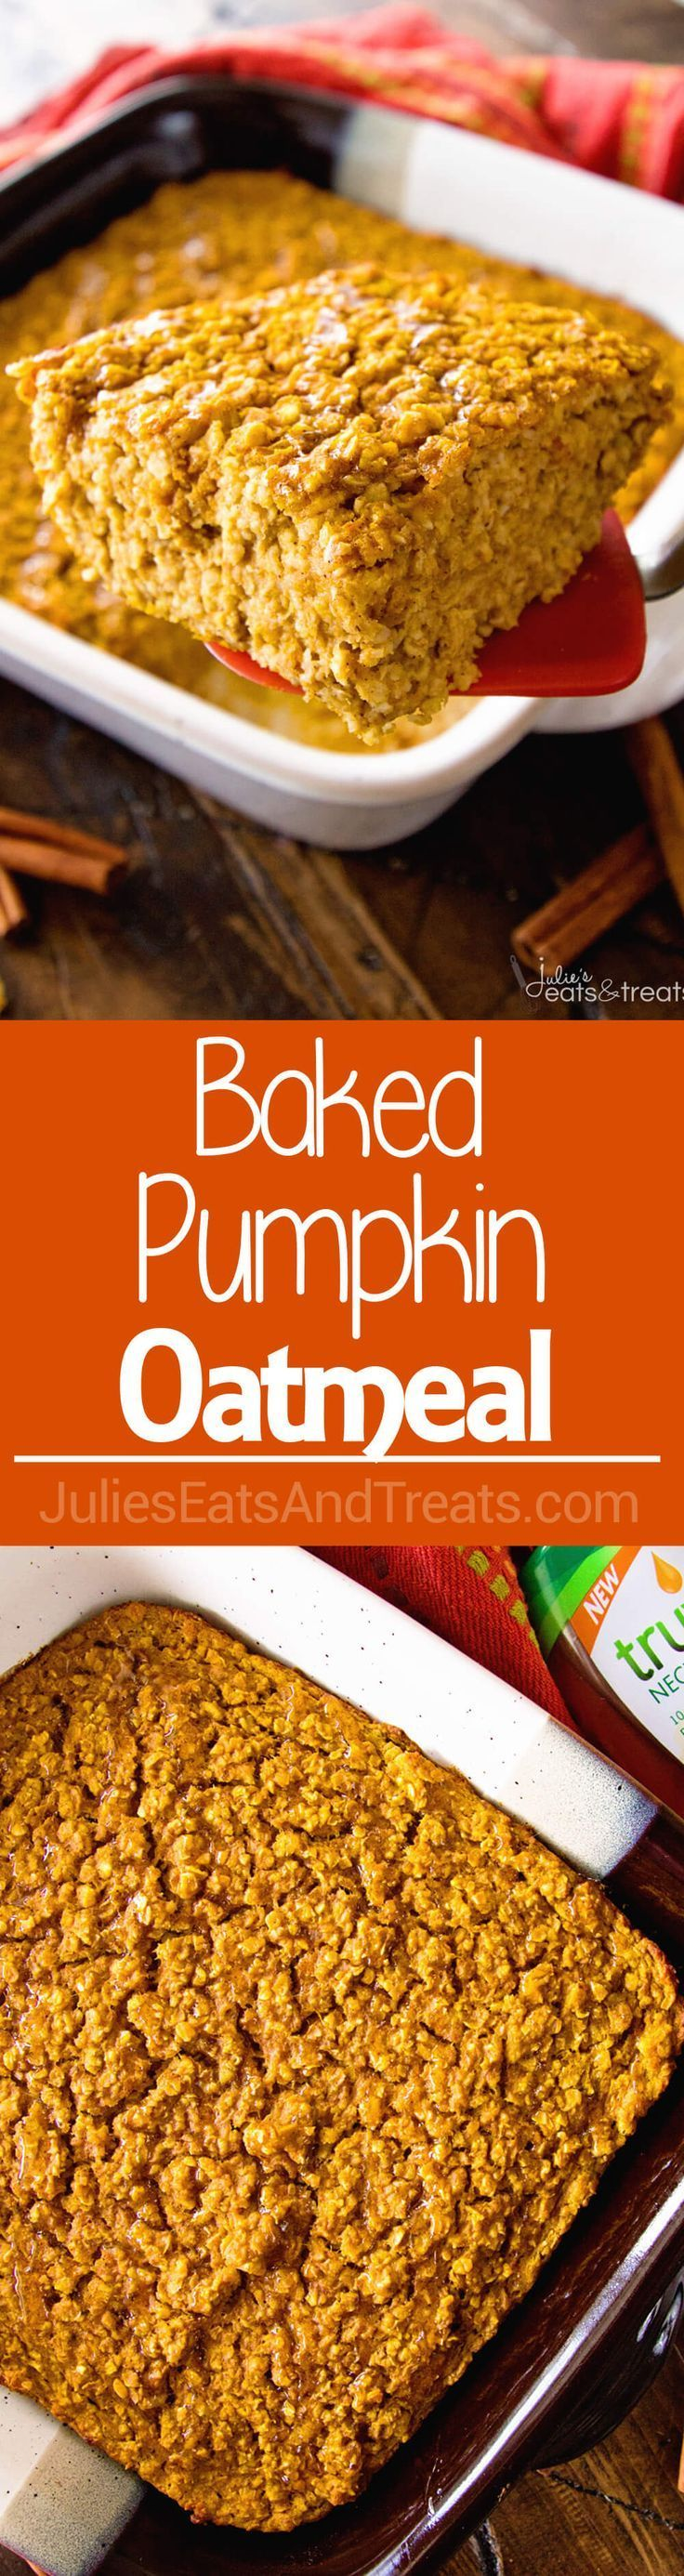 Baked Pumpkin Oatmeal ~ This Easy, Make-Ahead Baked Oatmeal is the Perfect Breakfast for Busy Mornings! Filled with Pumpkin, Oats and Spices to Fill You Up! via /julieseats/